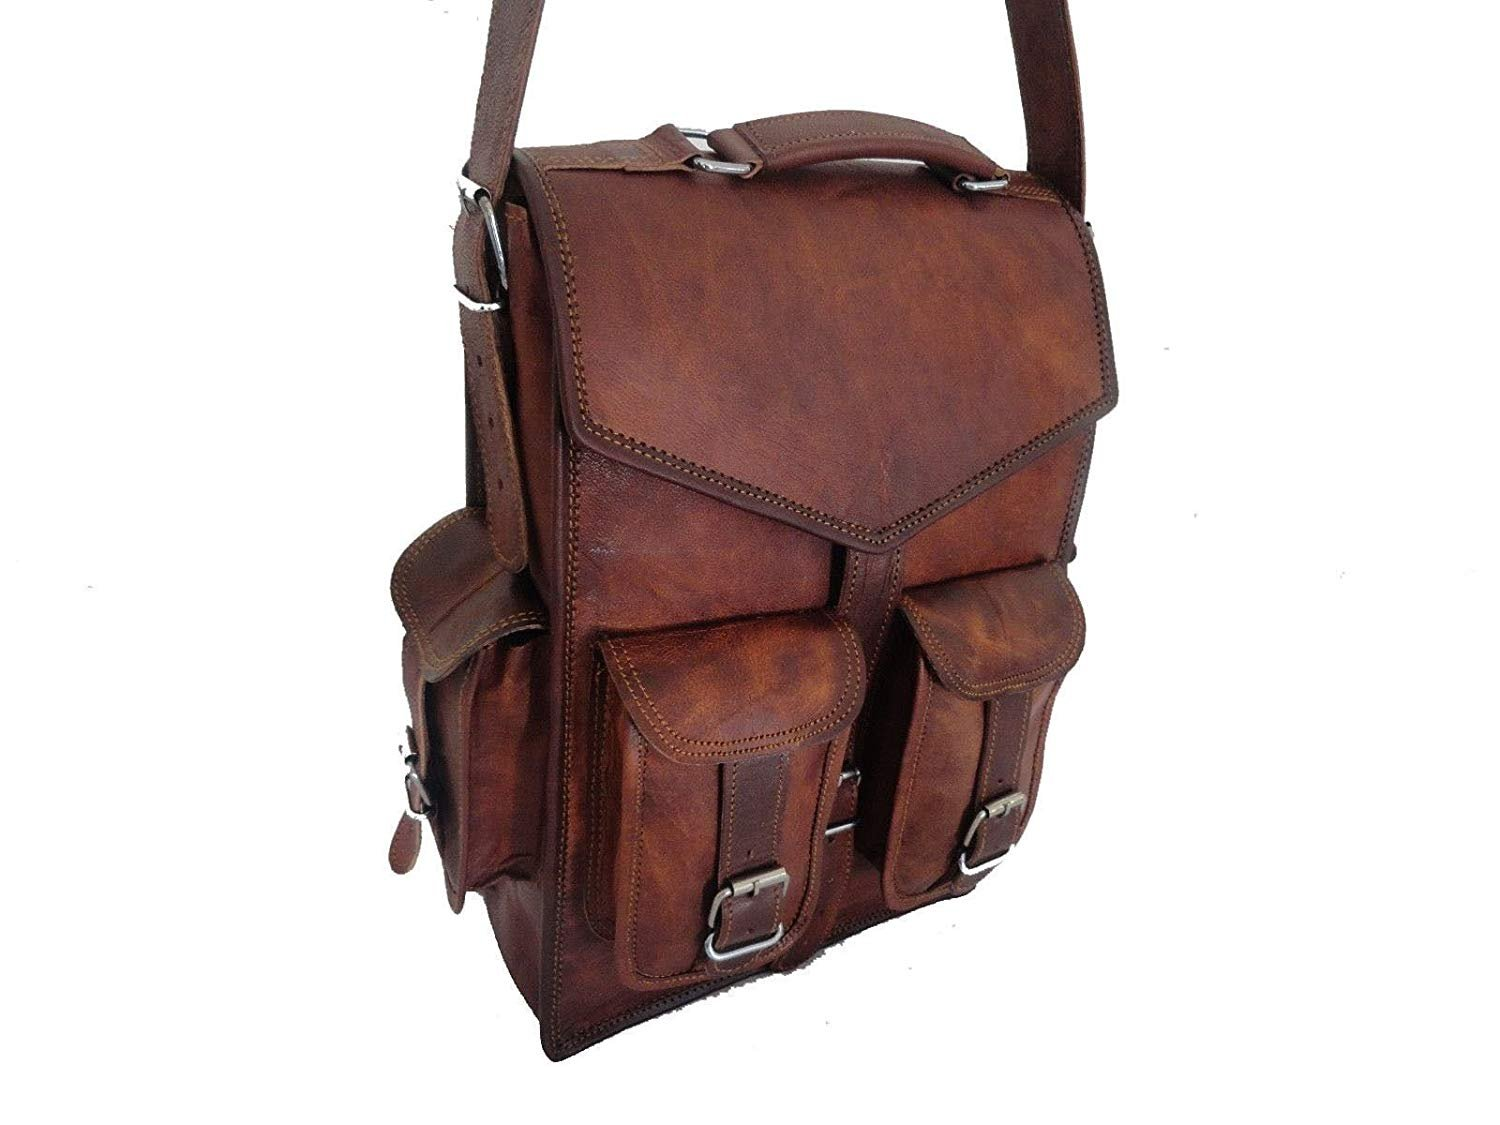 New Handmade Craft Vintage Genuine 2 IN 1 Leather Back Pack Travel Bag Men's and Women's ANUENT